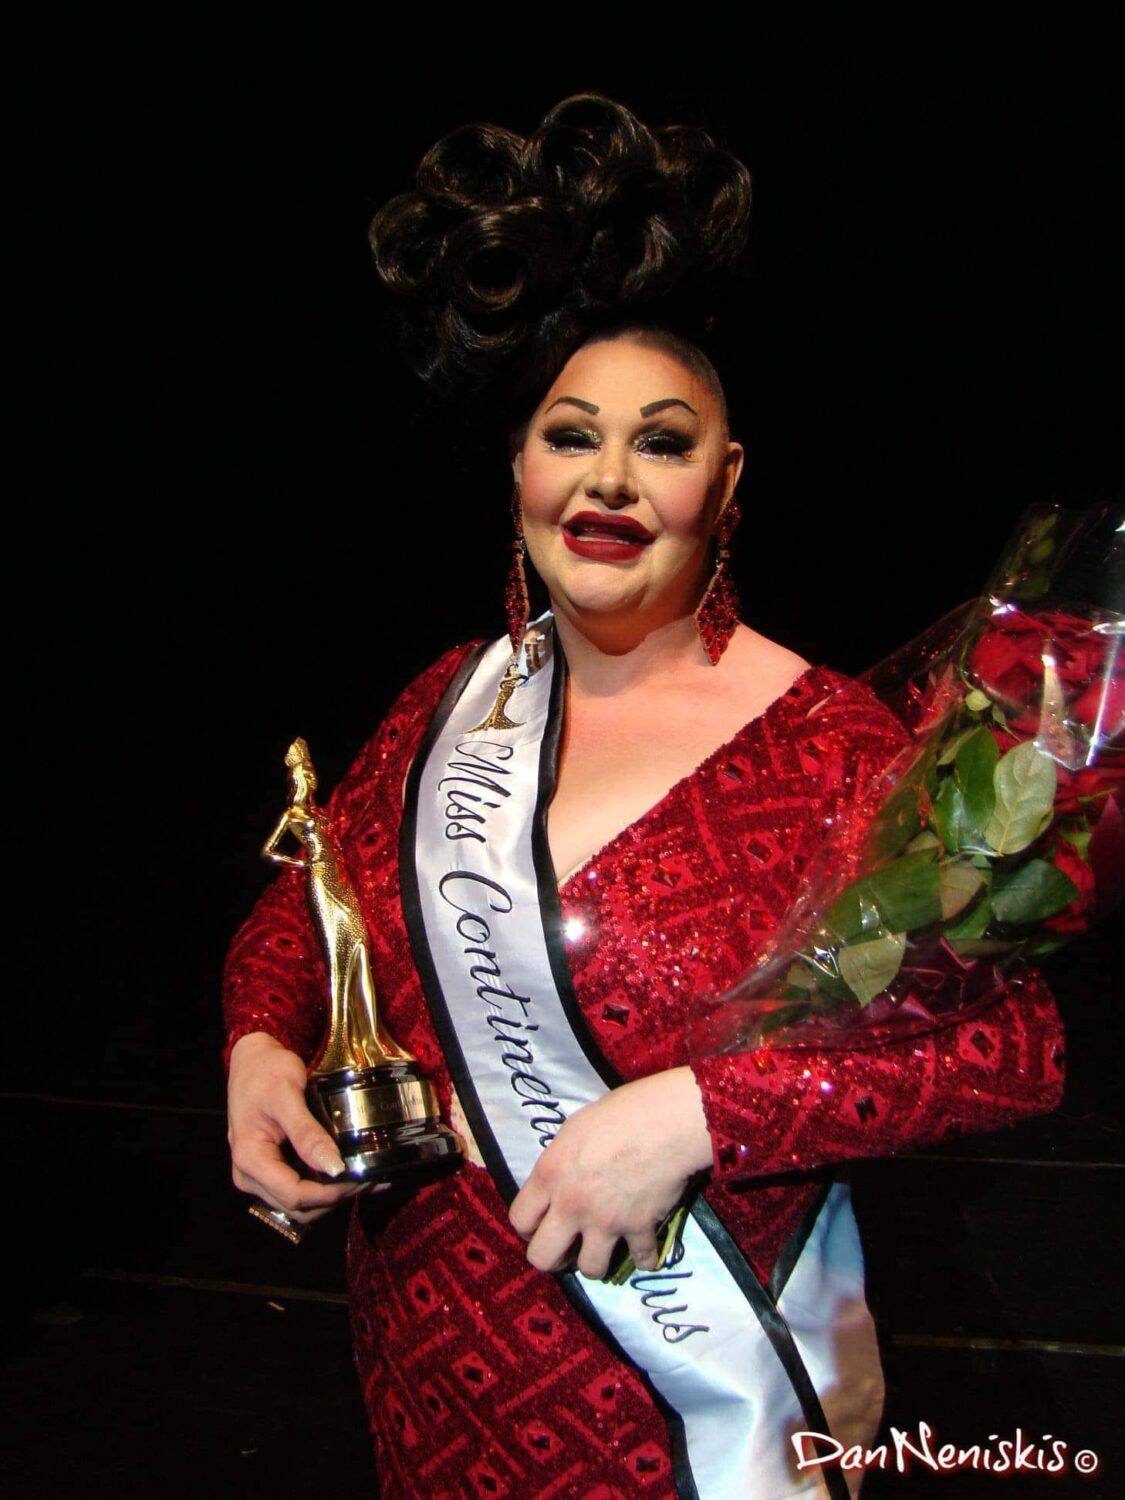 Britney Tyler after being crowned Miss Continental Plus   The Vic (Chicago, Illinois)   9/5/2021 Photo by Dan Neniskis